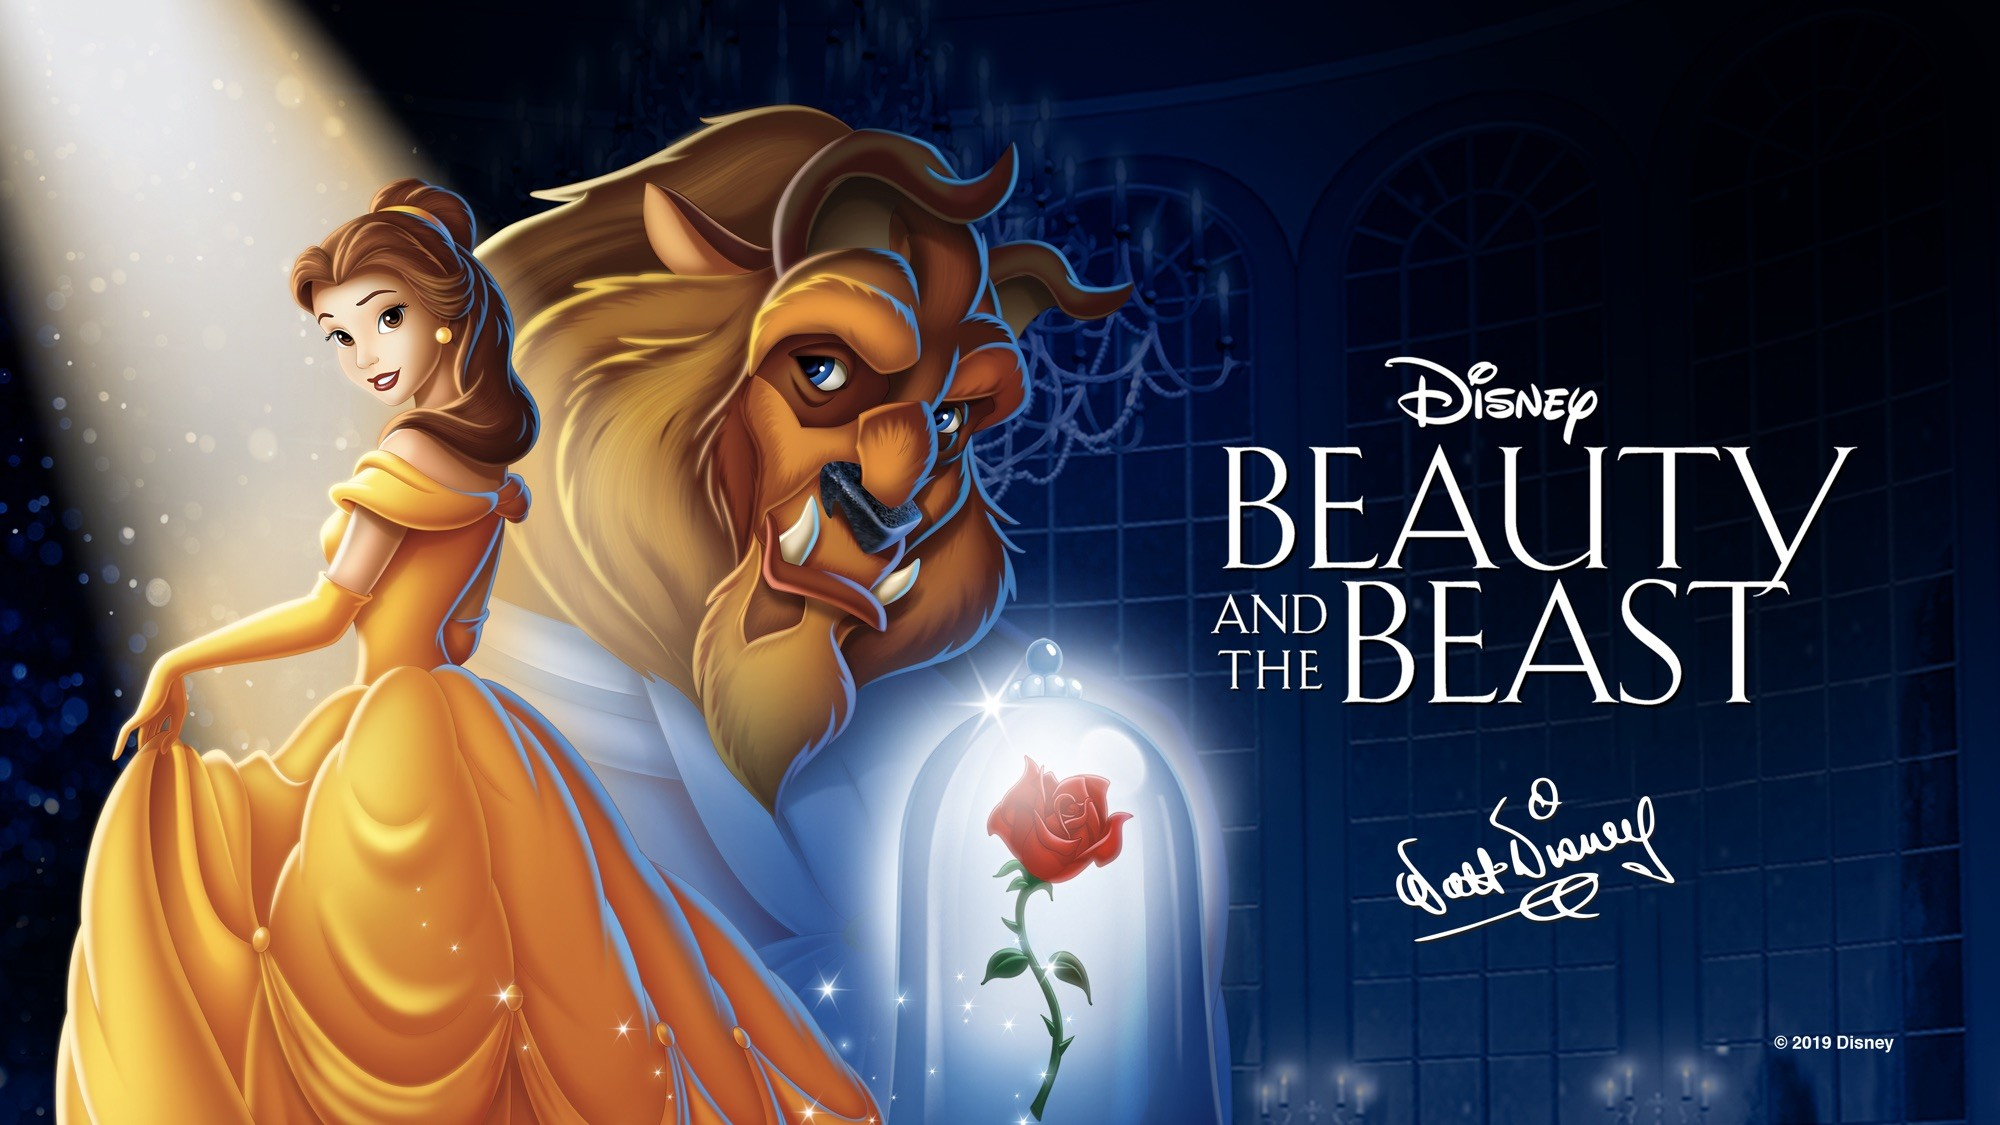 You are currently viewing THE BEAUTY AND THE BEAST: A Reflection on Relationships